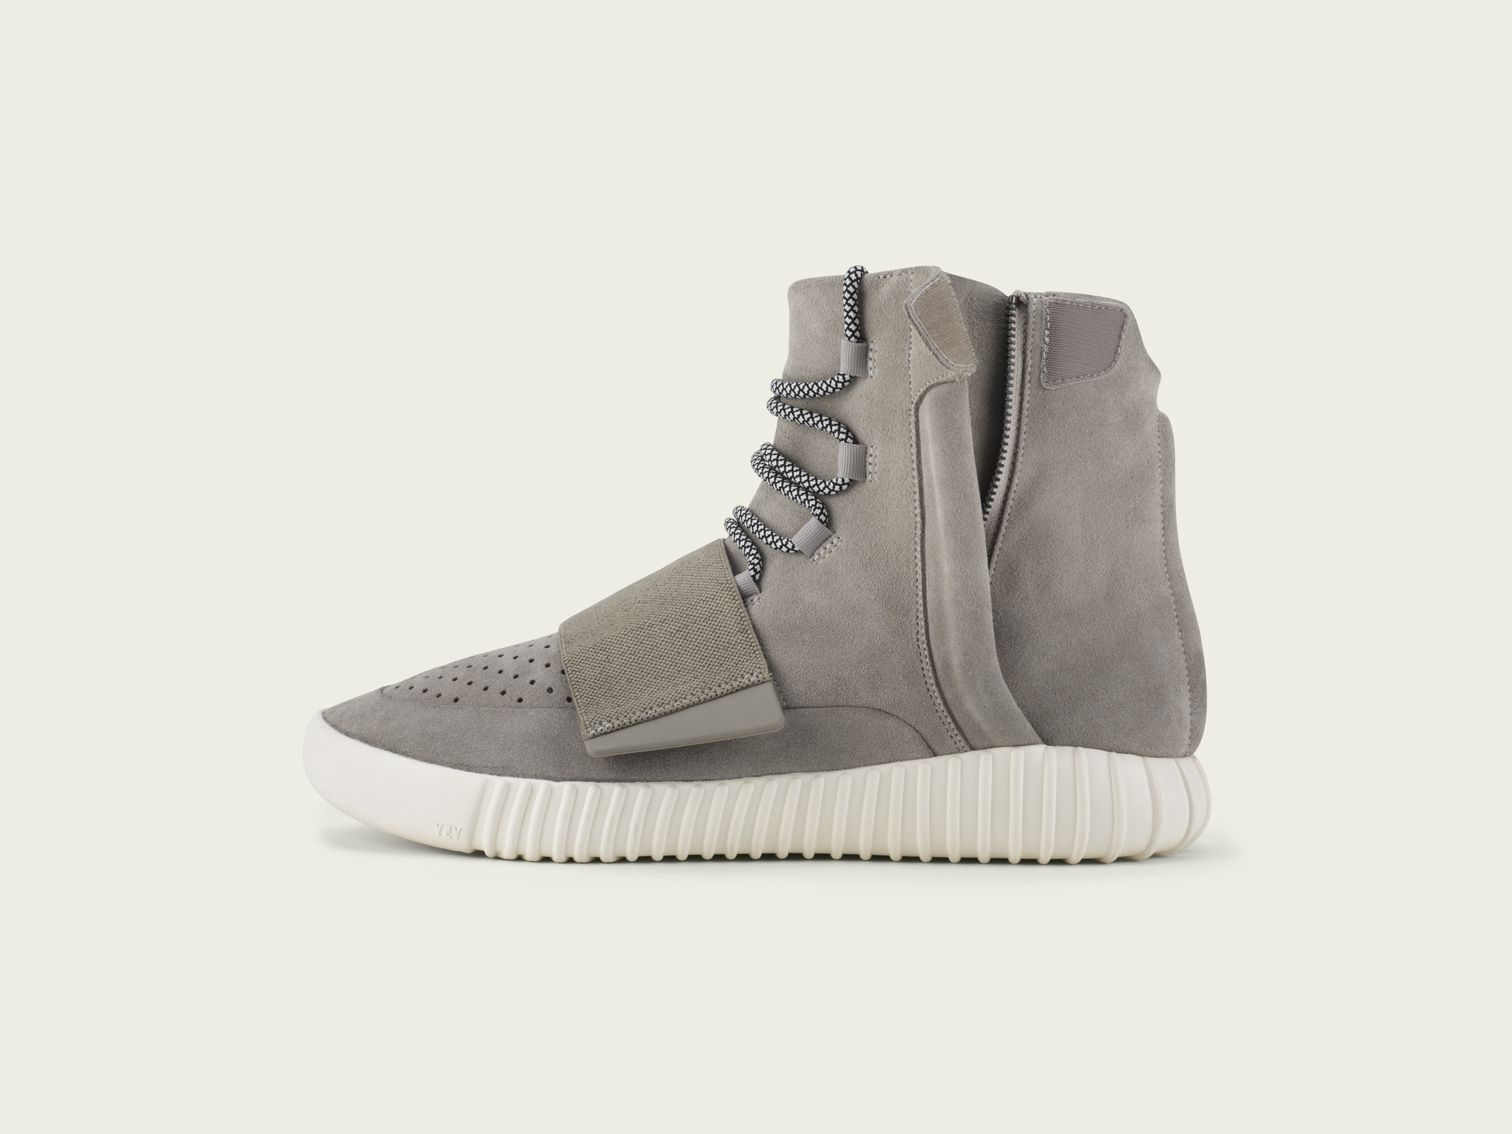 Adidas Yeezy Boost 750 new Shoes Adidas Yeezy Boost 750 new Shoes Chaussure running Adidas Yeezy Boost 750 new Homme Best Noir Shoes